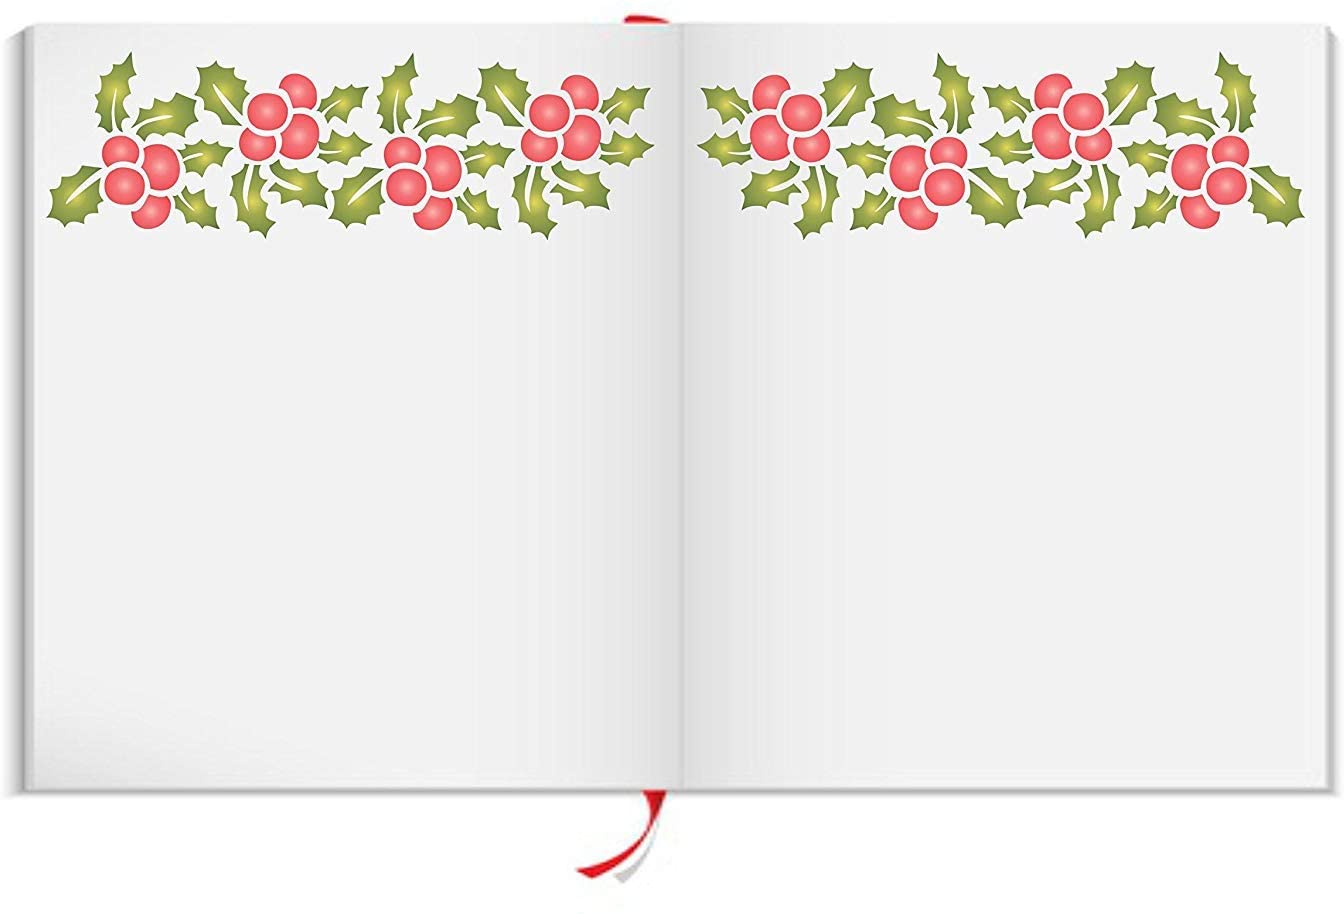 """CHRISTMAS HOLLY BORDER (size 10""""w x 3""""h) Reusable Stencils for Christmas Cards or Decorations - Best Quality Décor Ideas - Use on Walls, Floors, Fabrics, Glass, Wood, and More…"""